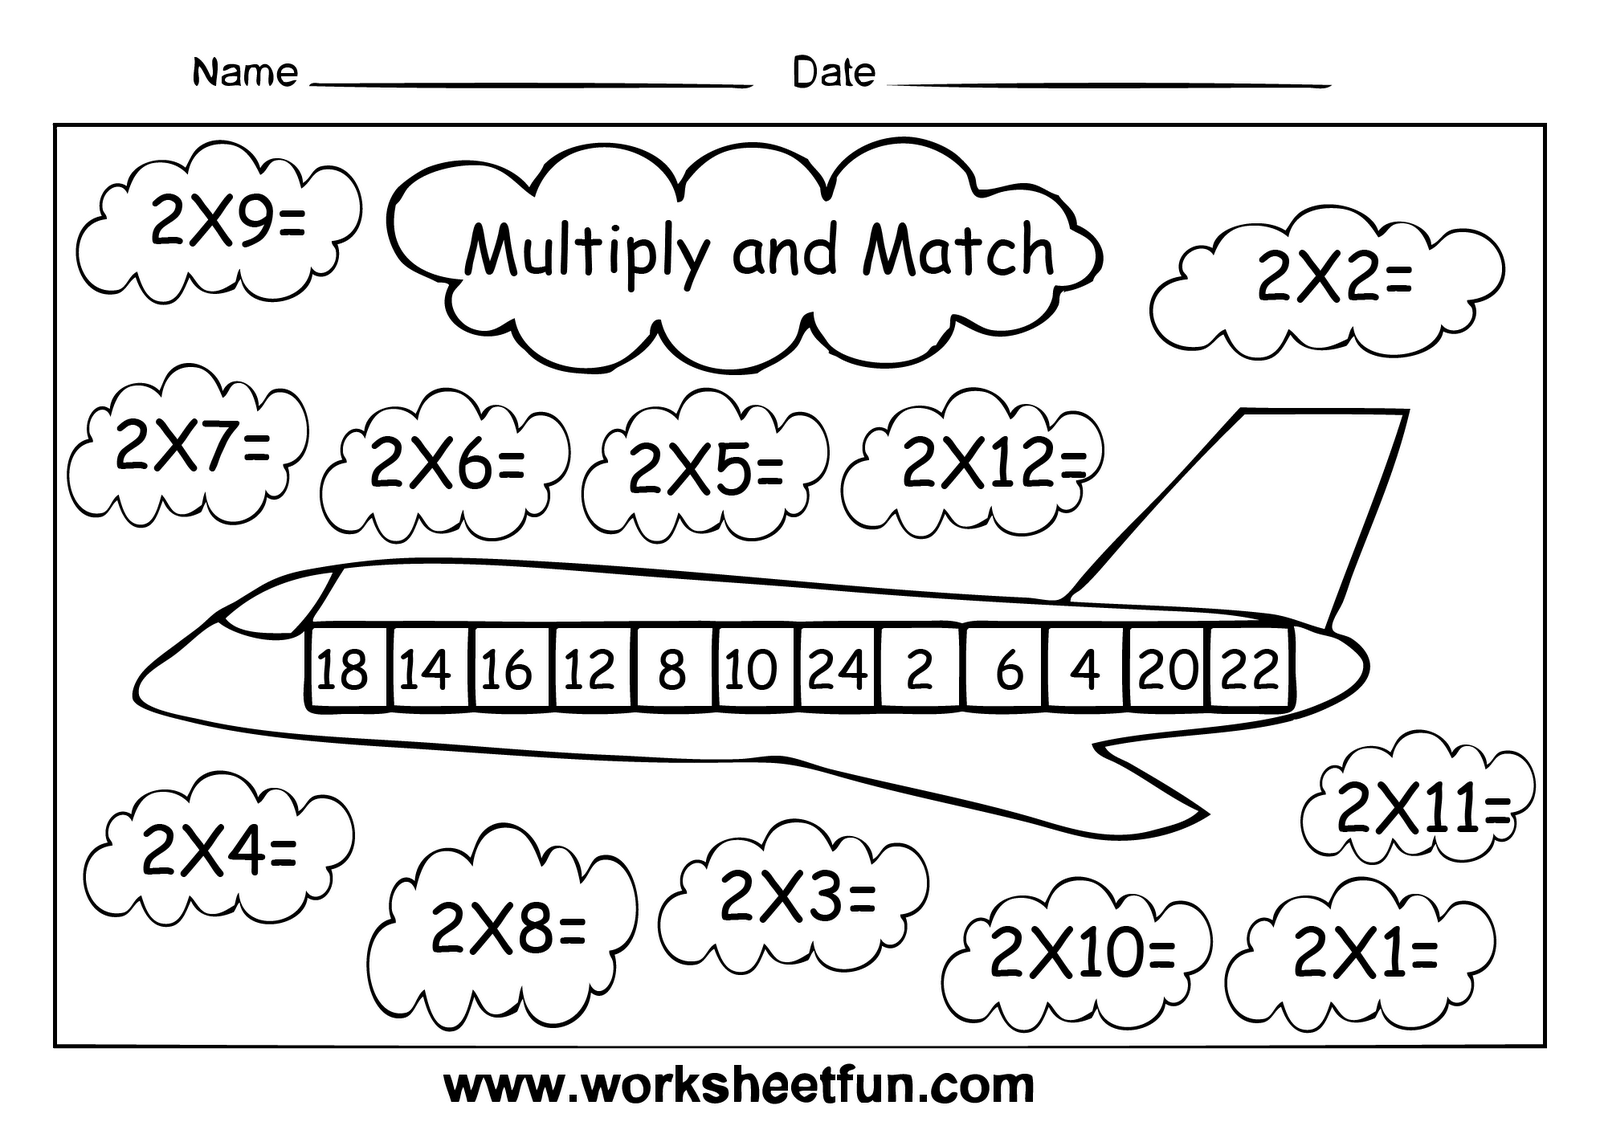 math worksheet : arab unity school  grade 1 d  blog multiplication worksheet : 2 5 And 10 Multiplication Worksheets